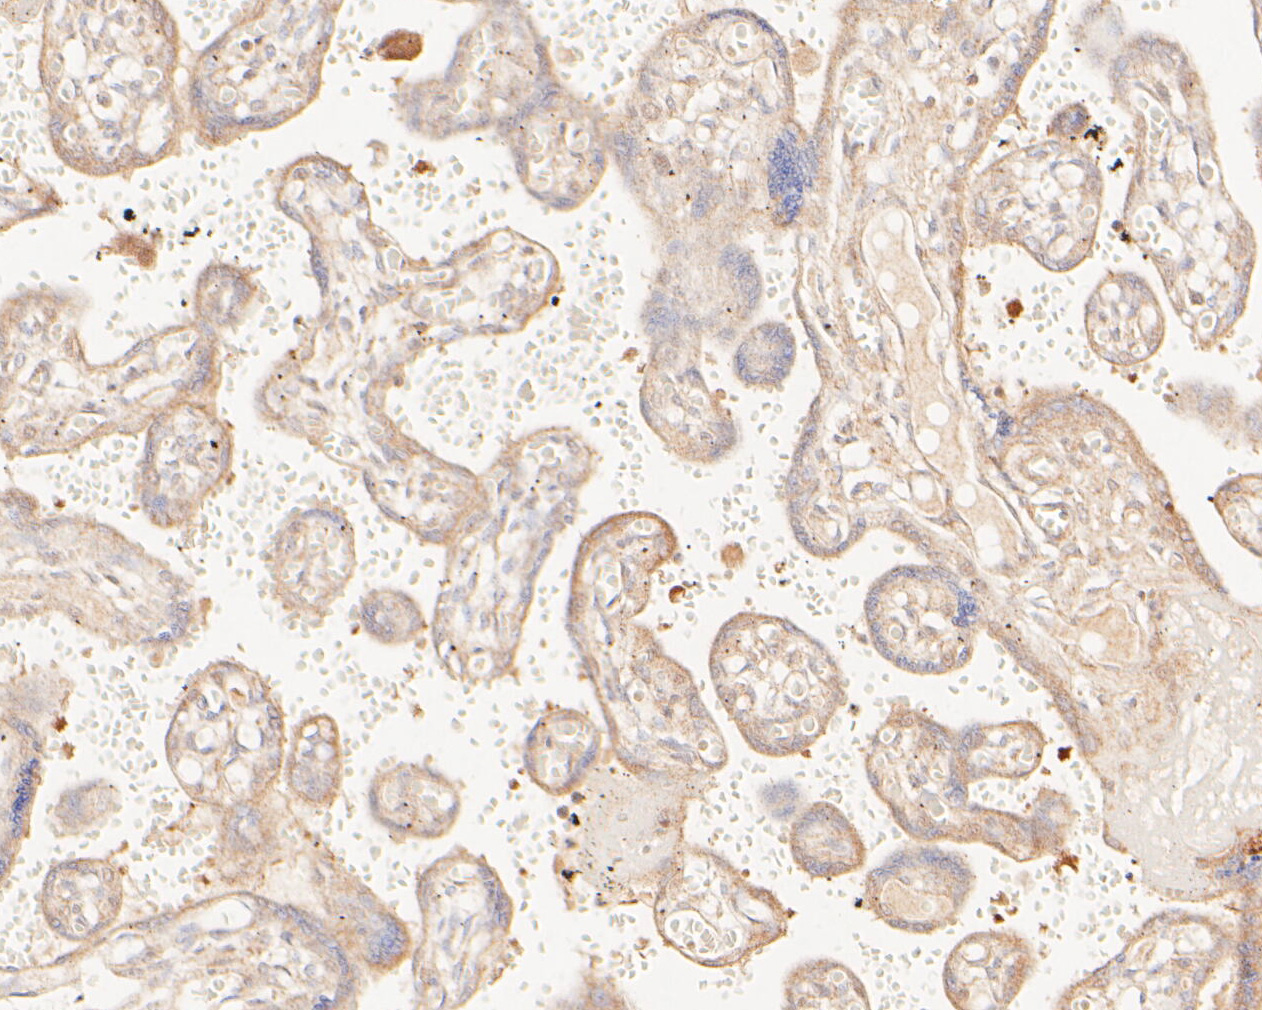 Immunohistochemical analysis of paraffin-embedded human placenta tissue using anti-MAGT1 antibody. The section was pre-treated using heat mediated antigen retrieval with Tris-EDTA buffer (pH 8.0-8.4) for 20 minutes.The tissues were blocked in 5% BSA for 30 minutes at room temperature, washed with ddH2O and PBS, and then probed with the primary antibody (ER1902-99, 1/200) for 30 minutes at room temperature. The detection was performed using an HRP conjugated compact polymer system. DAB was used as the chromogen. Tissues were counterstained with hematoxylin and mounted with DPX.